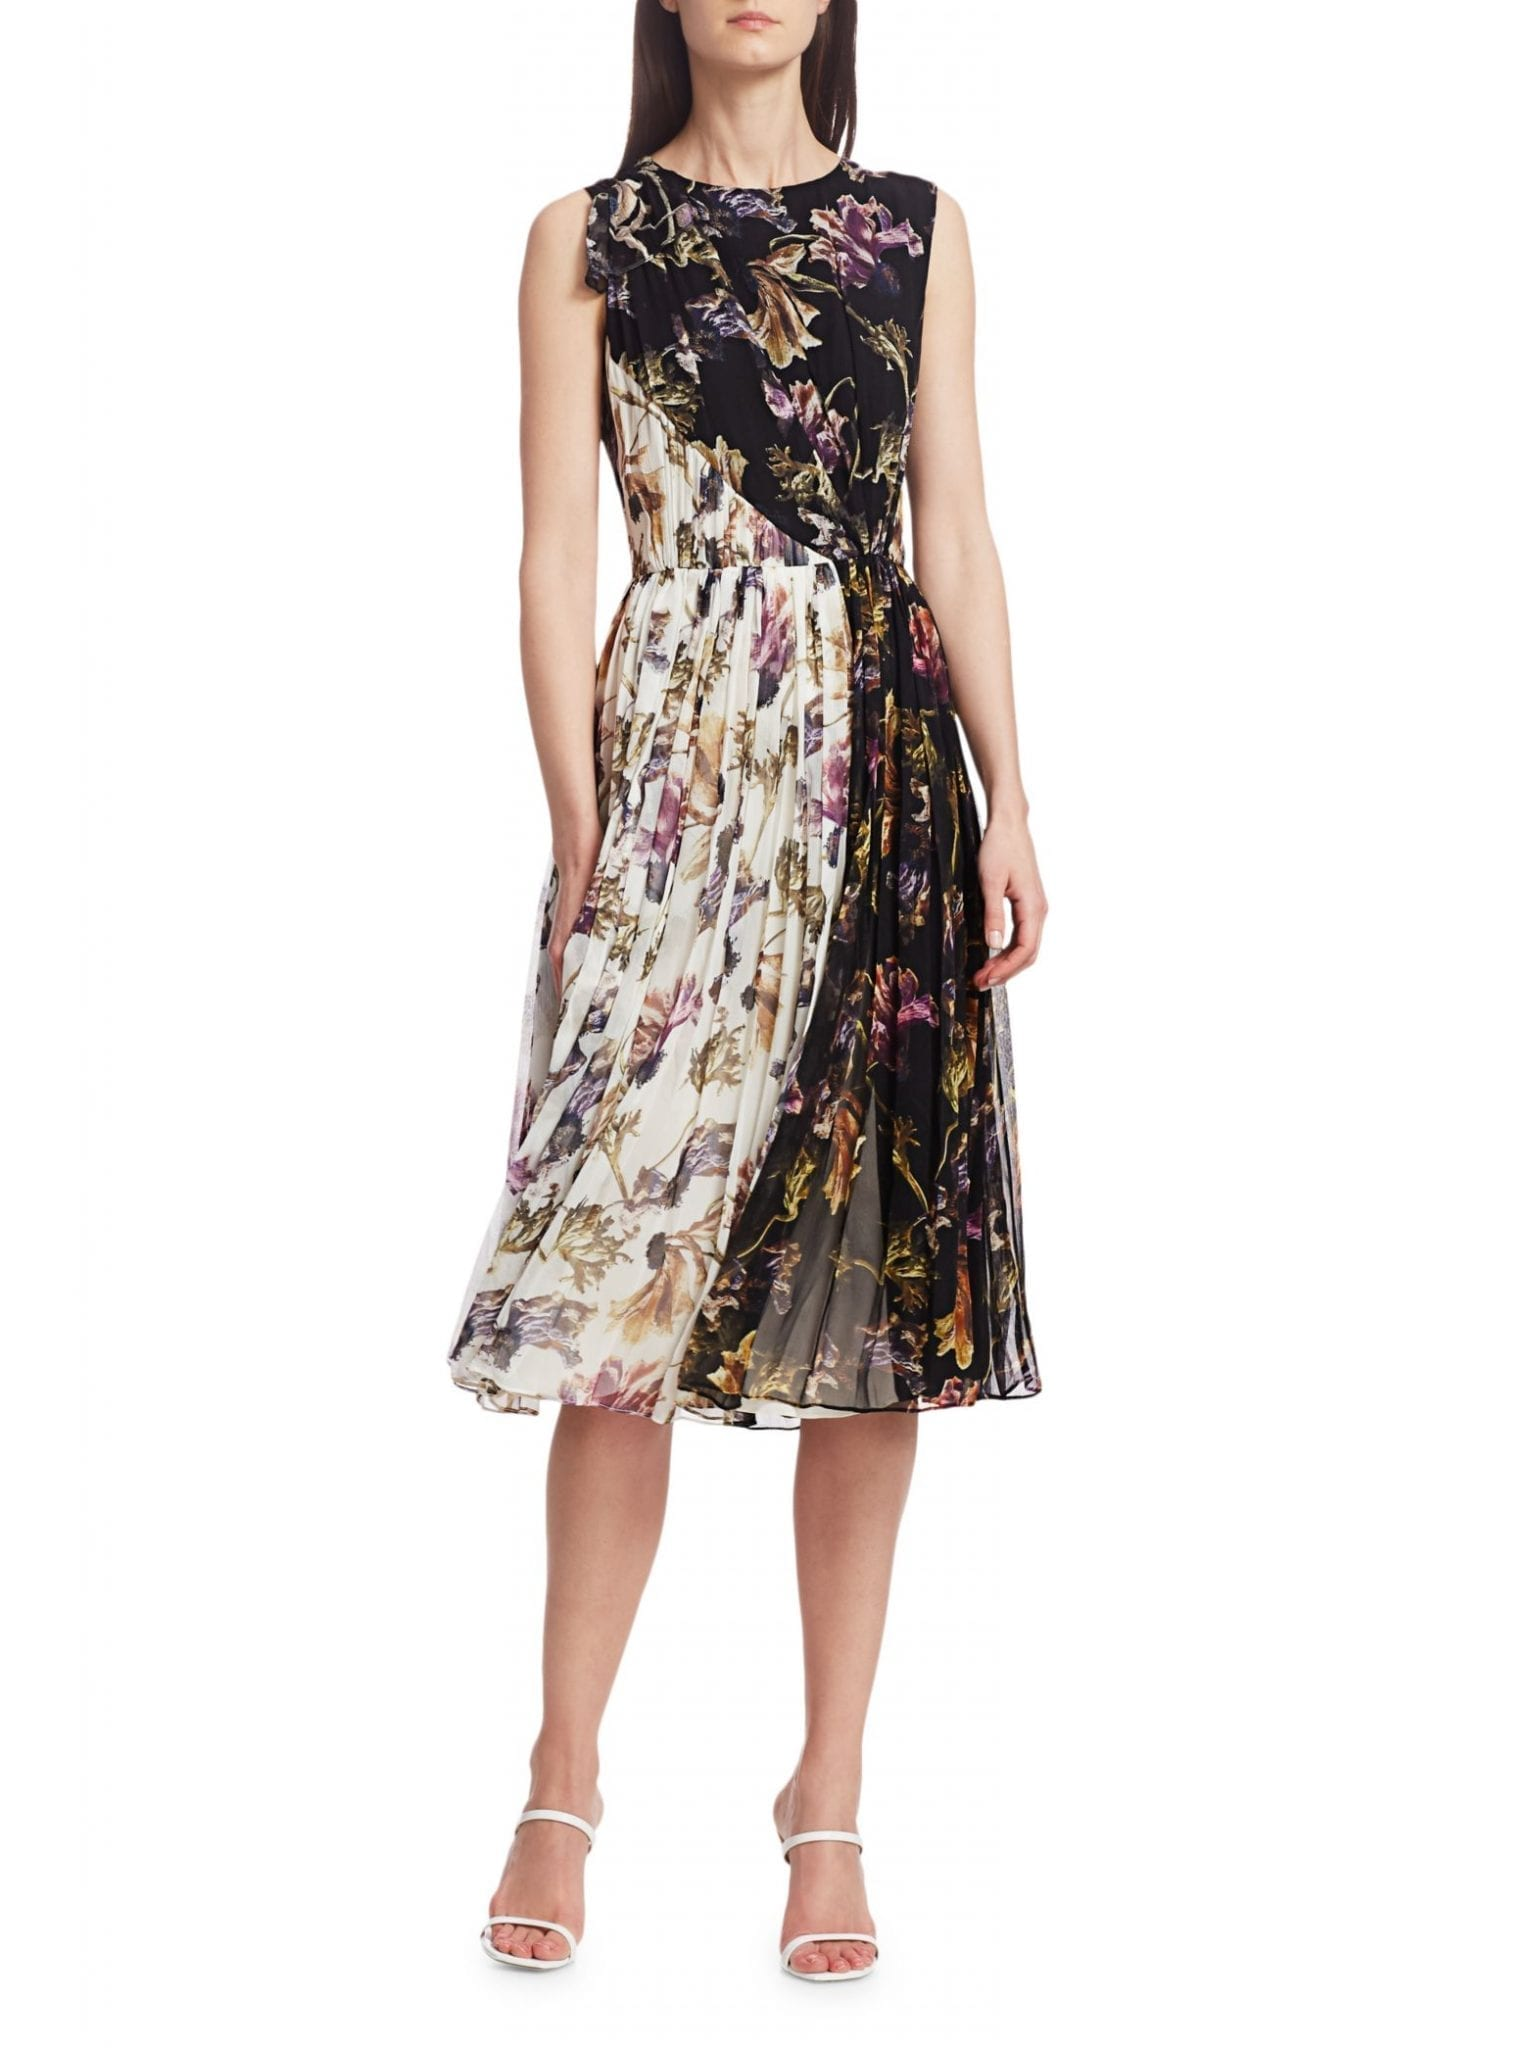 JASON WU COLLECTION Floral Crinkle Silk Chiffon Midi Dress